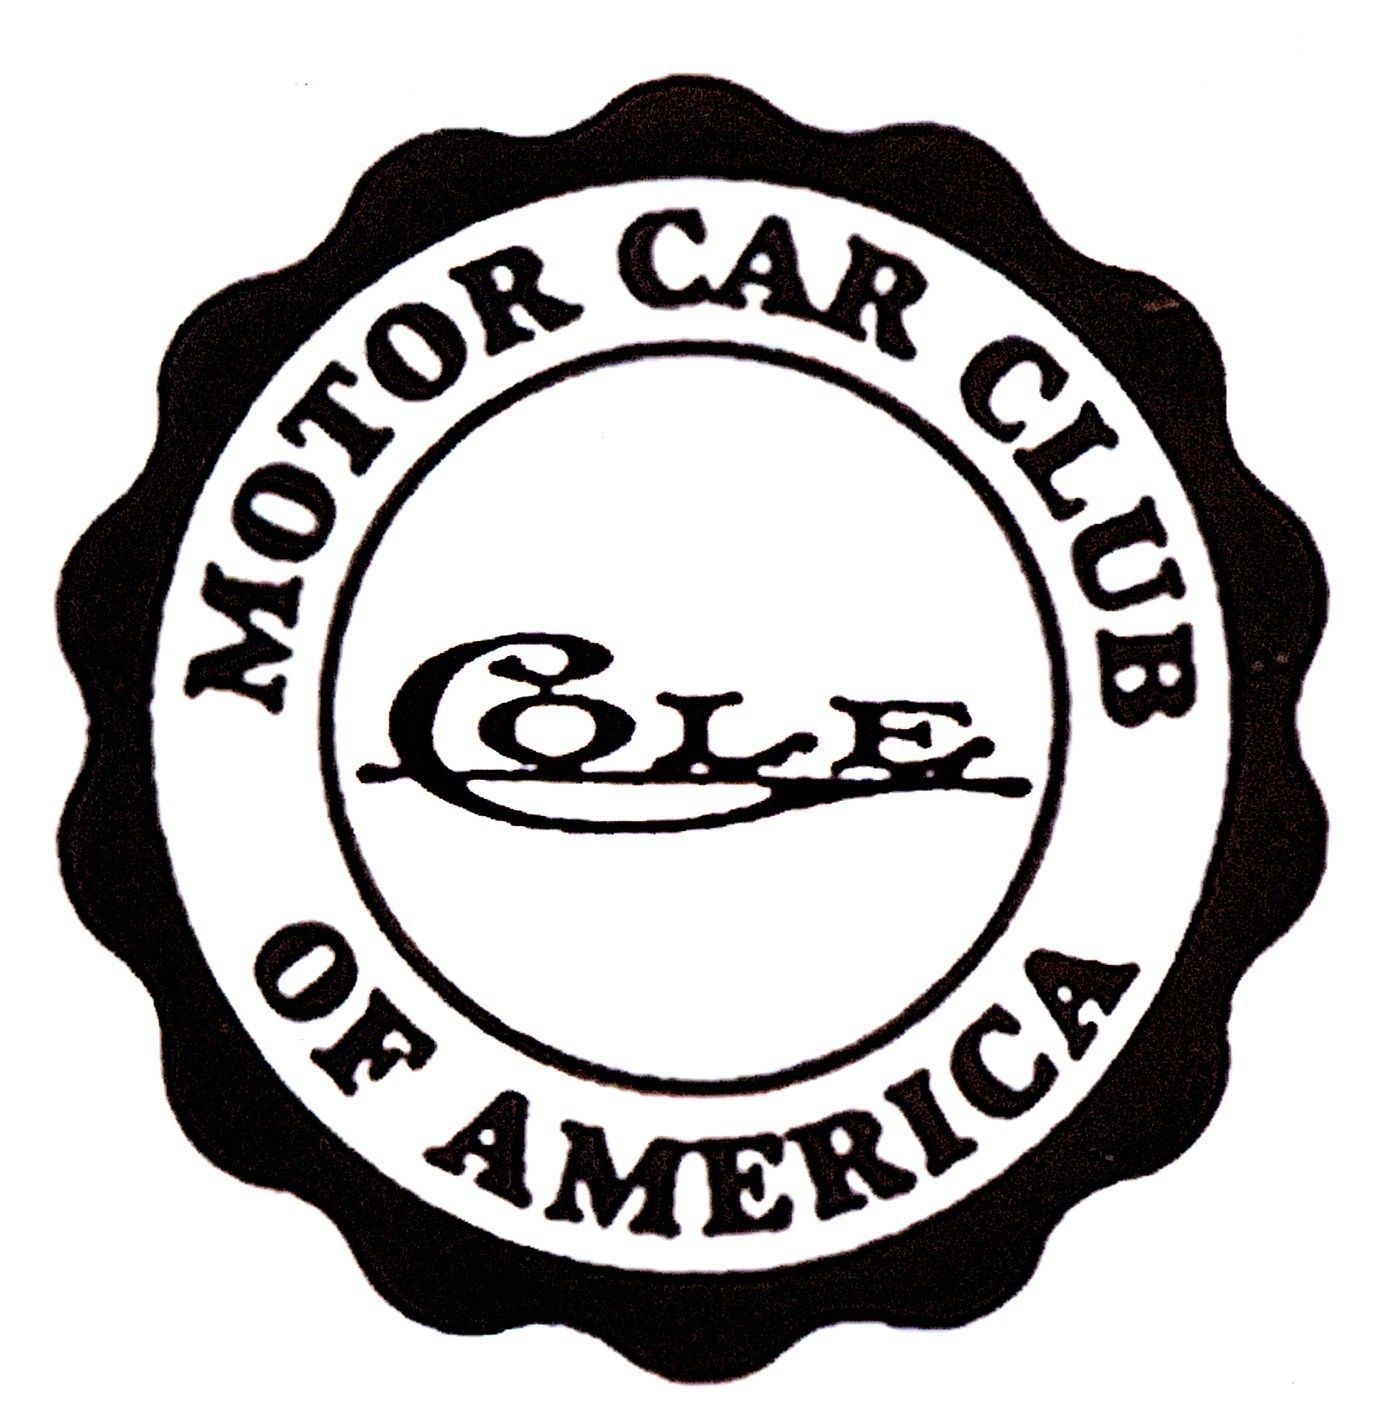 Motor club of america clipart clipart freeuse library The Cole Motor Car Club of America History - Cole Motor Car ... clipart freeuse library